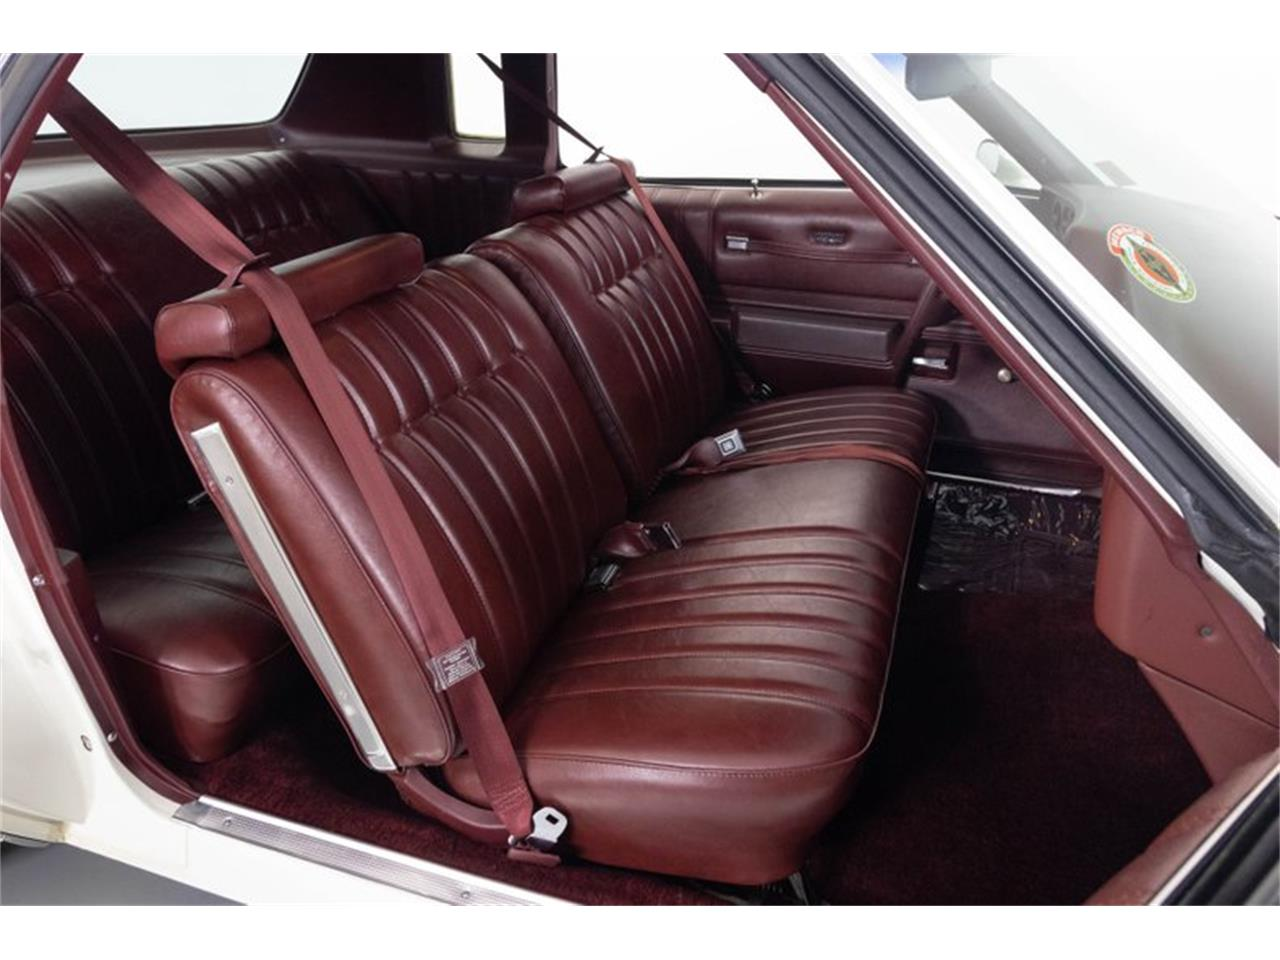 1976 Chevrolet Monte Carlo (CC-1311145) for sale in St. Charles, Missouri